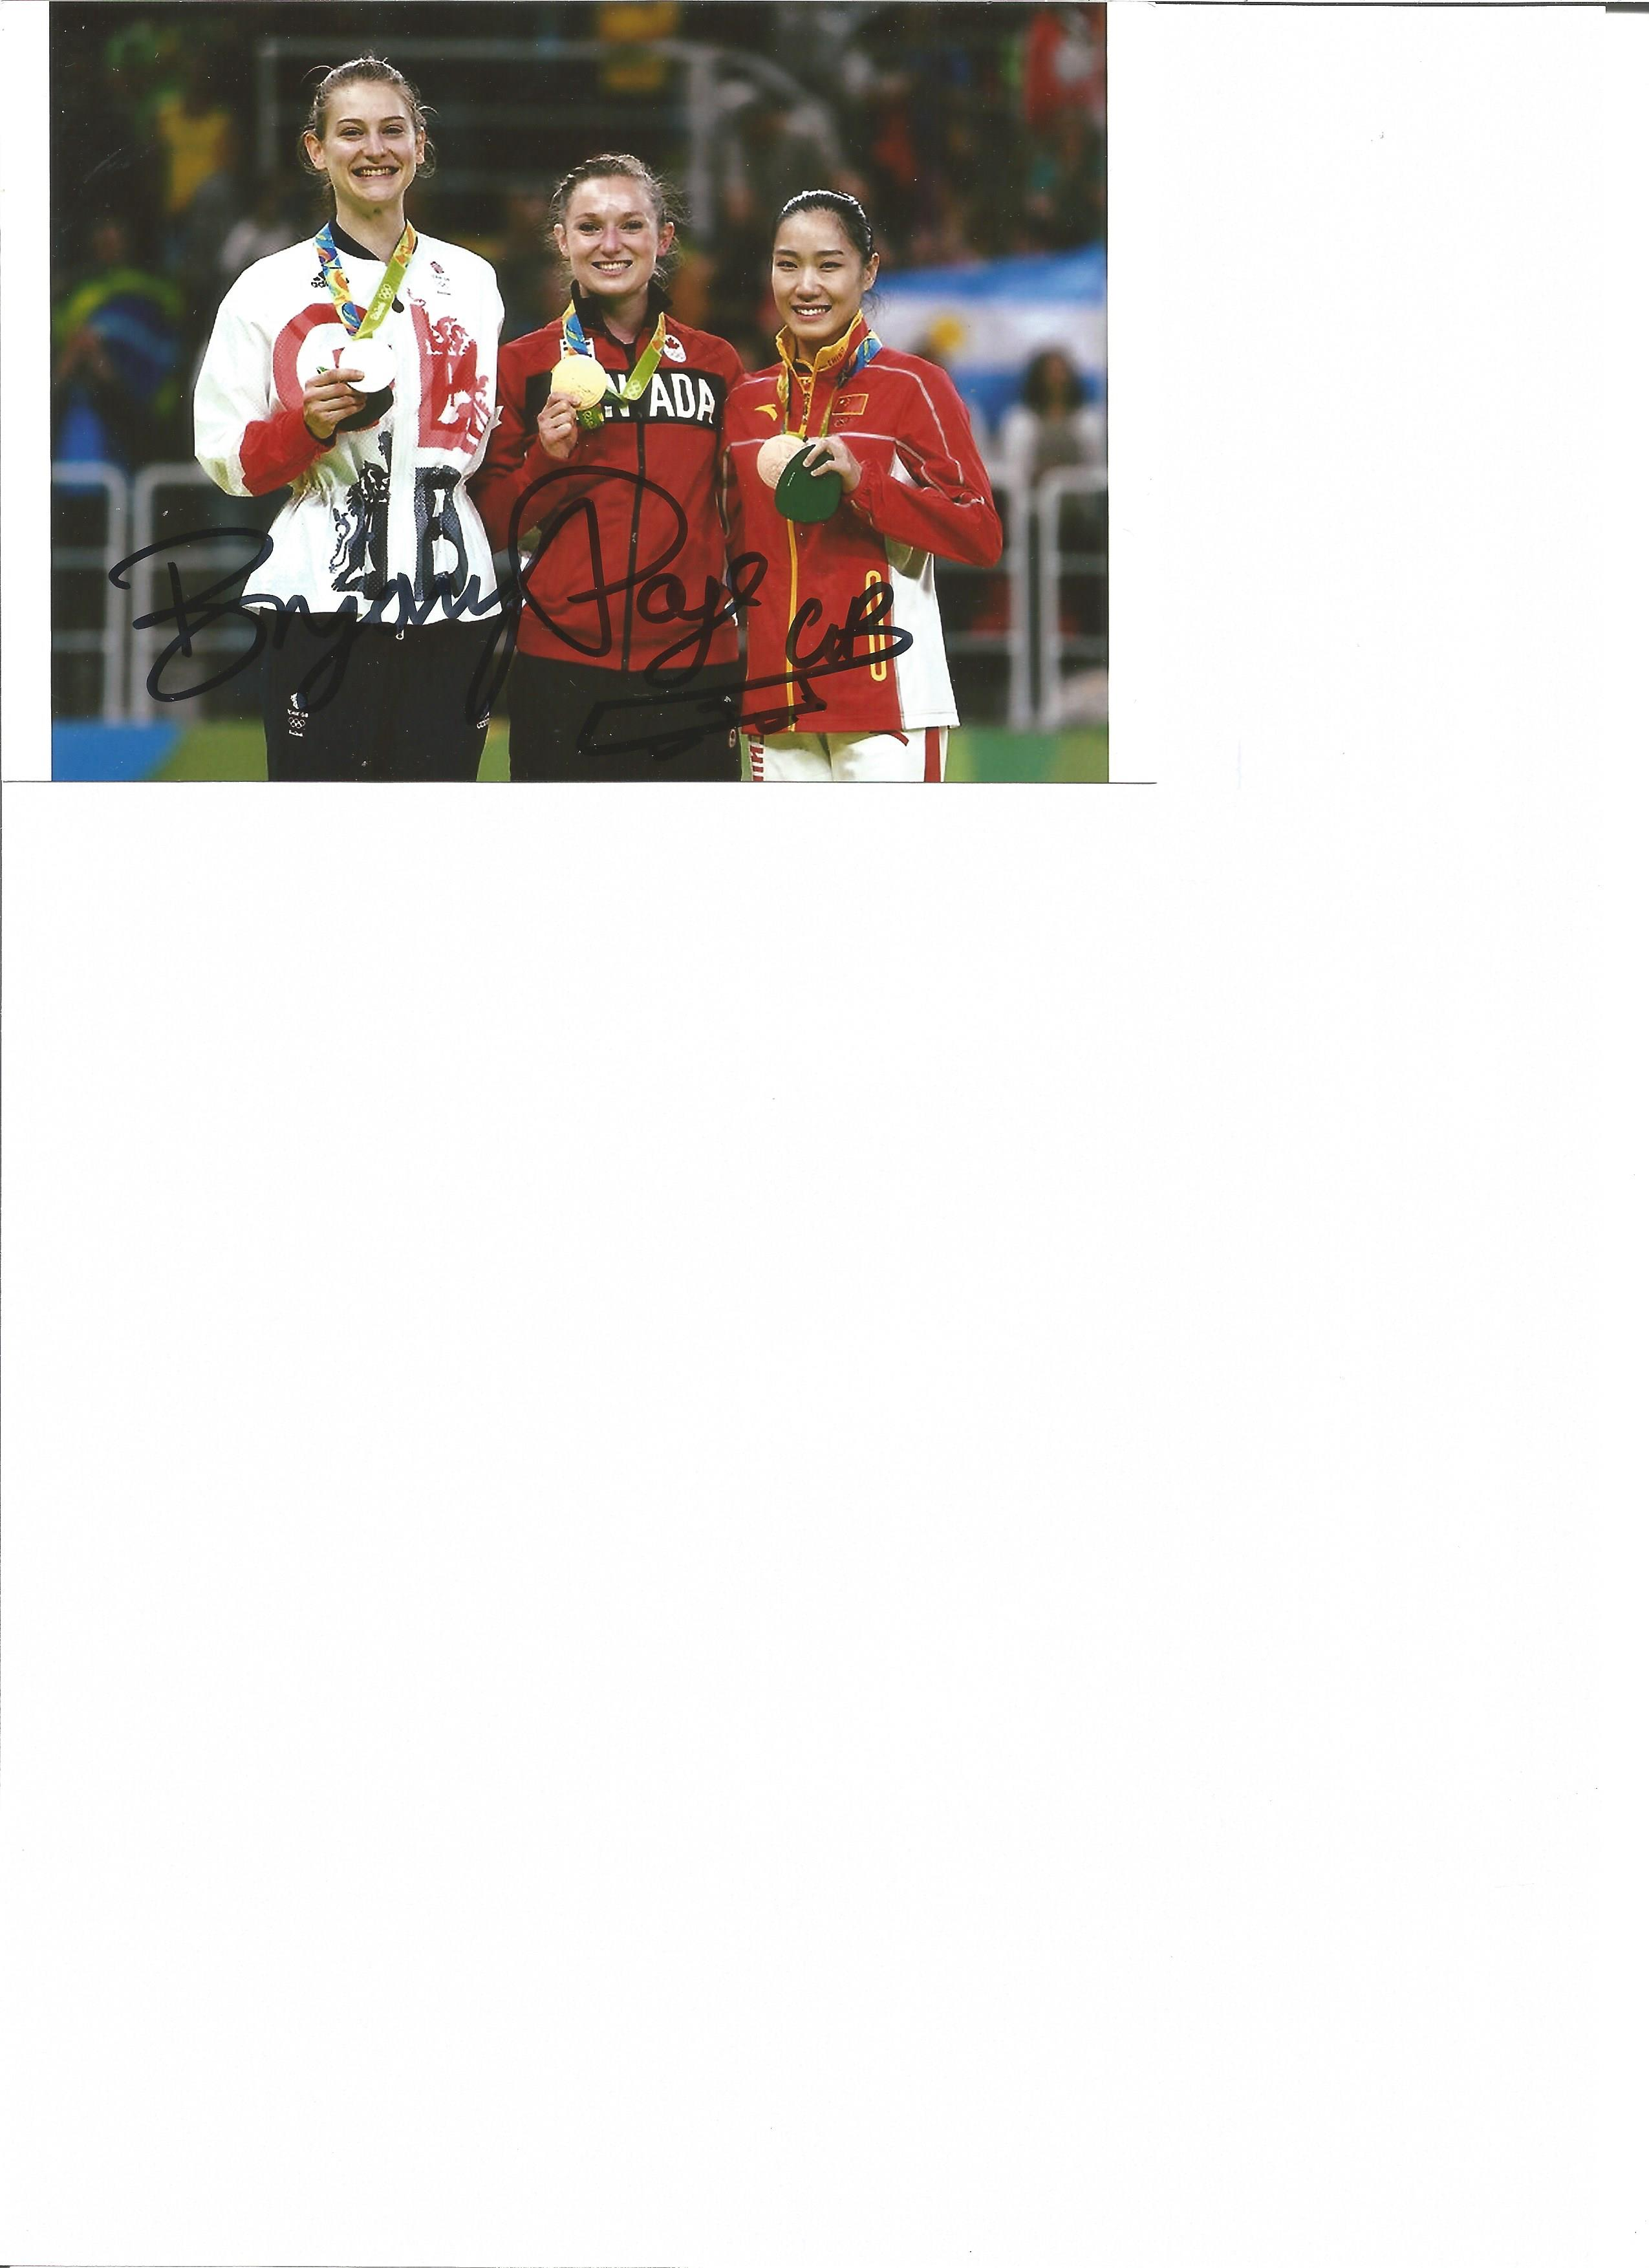 Lot 653 - Olympics Byrony Page 6 x 4 inch signed colour photo of the Olympic silver medallist for Great